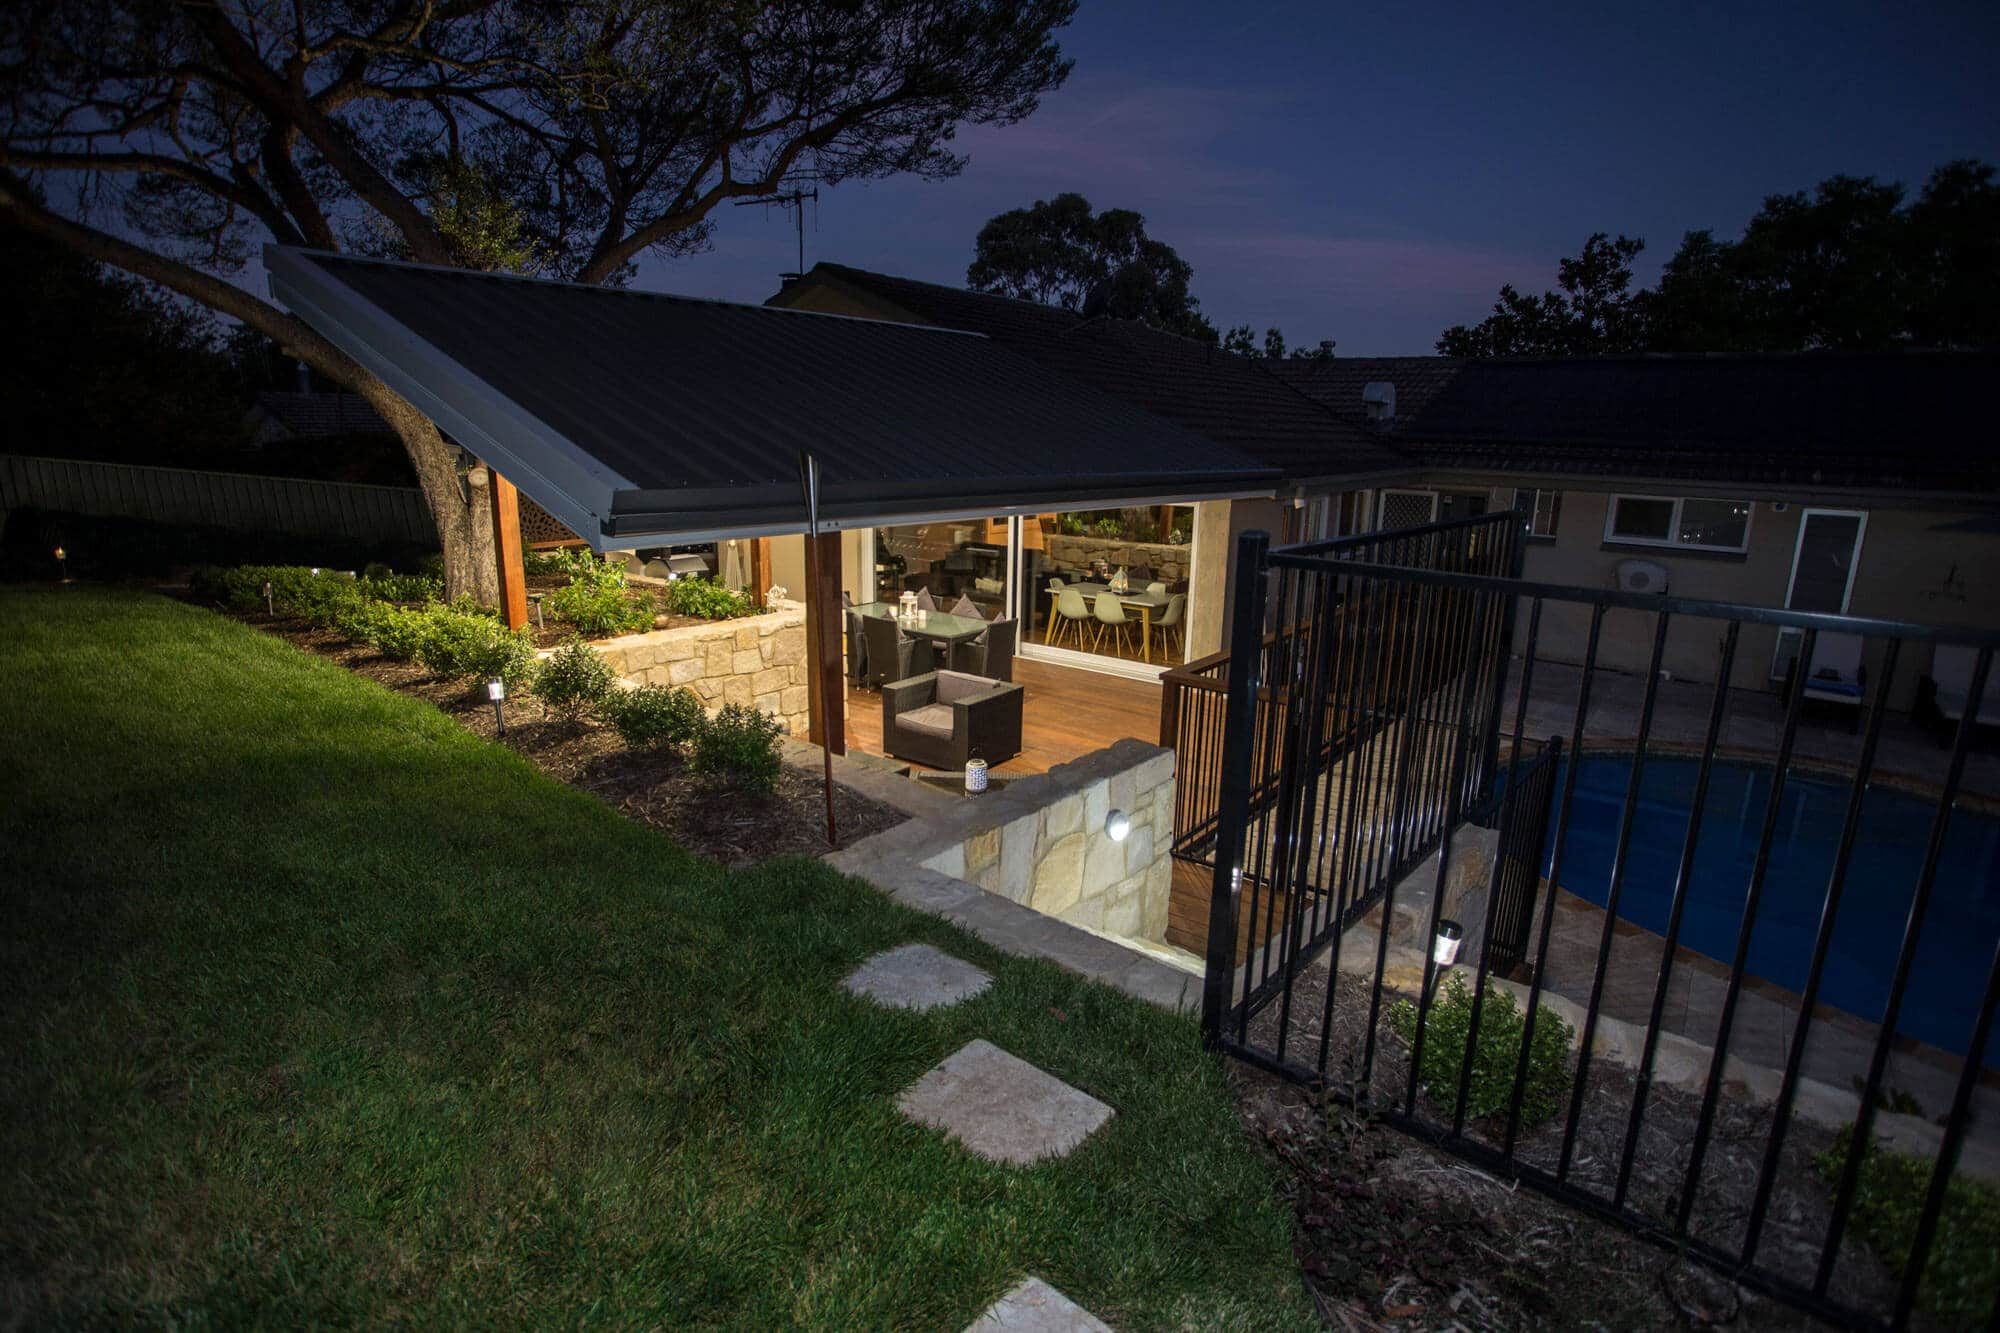 Gardengigs-After-Torrens-Project-Pool-Full-View-of-Lounge-and-Pool-at-Night